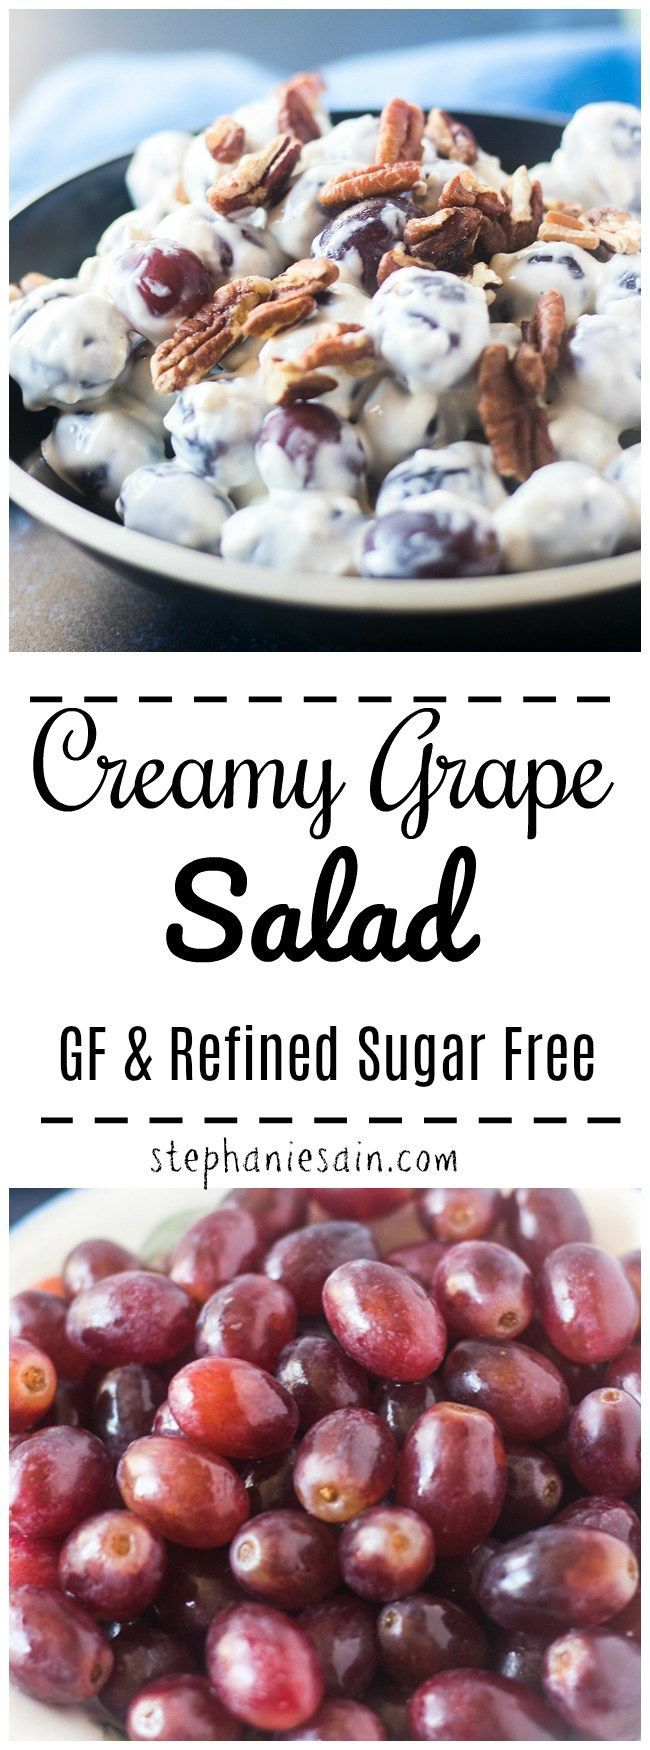 This Grape Salad is creamy, sweet and delicious. Made in under ten minutes in one bowl. Perfect for parties, entertaining, potlucks or anytime you need an easy side salad. Gluten Free & Refined sugar free. #sugarfreedesserts